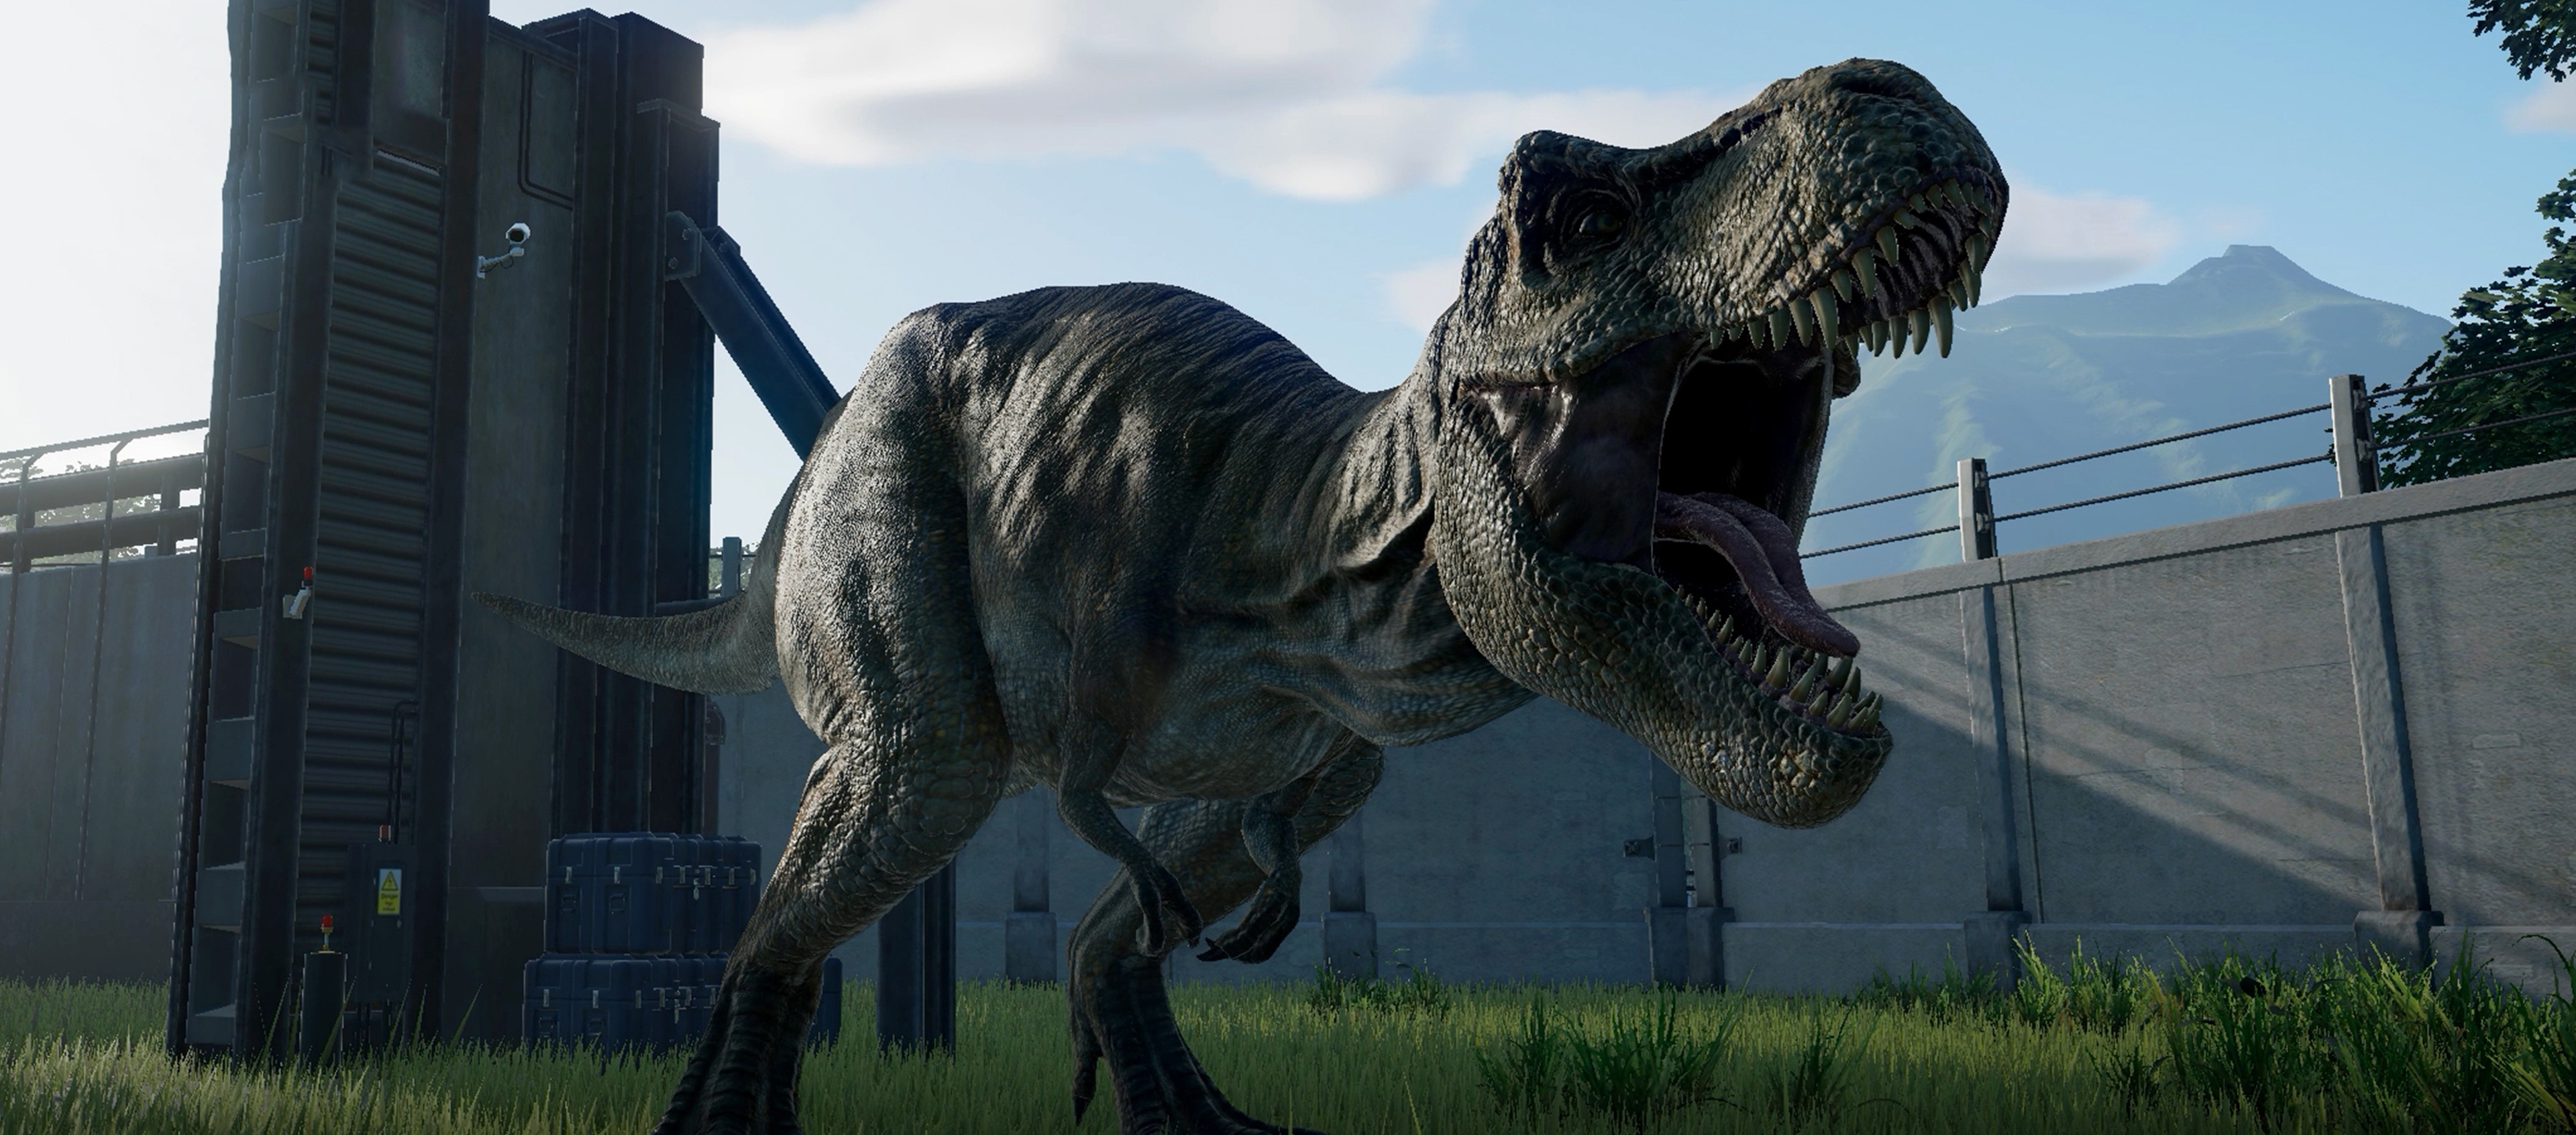 Jurassic World 4k Hd Movies 4k Wallpapers Images